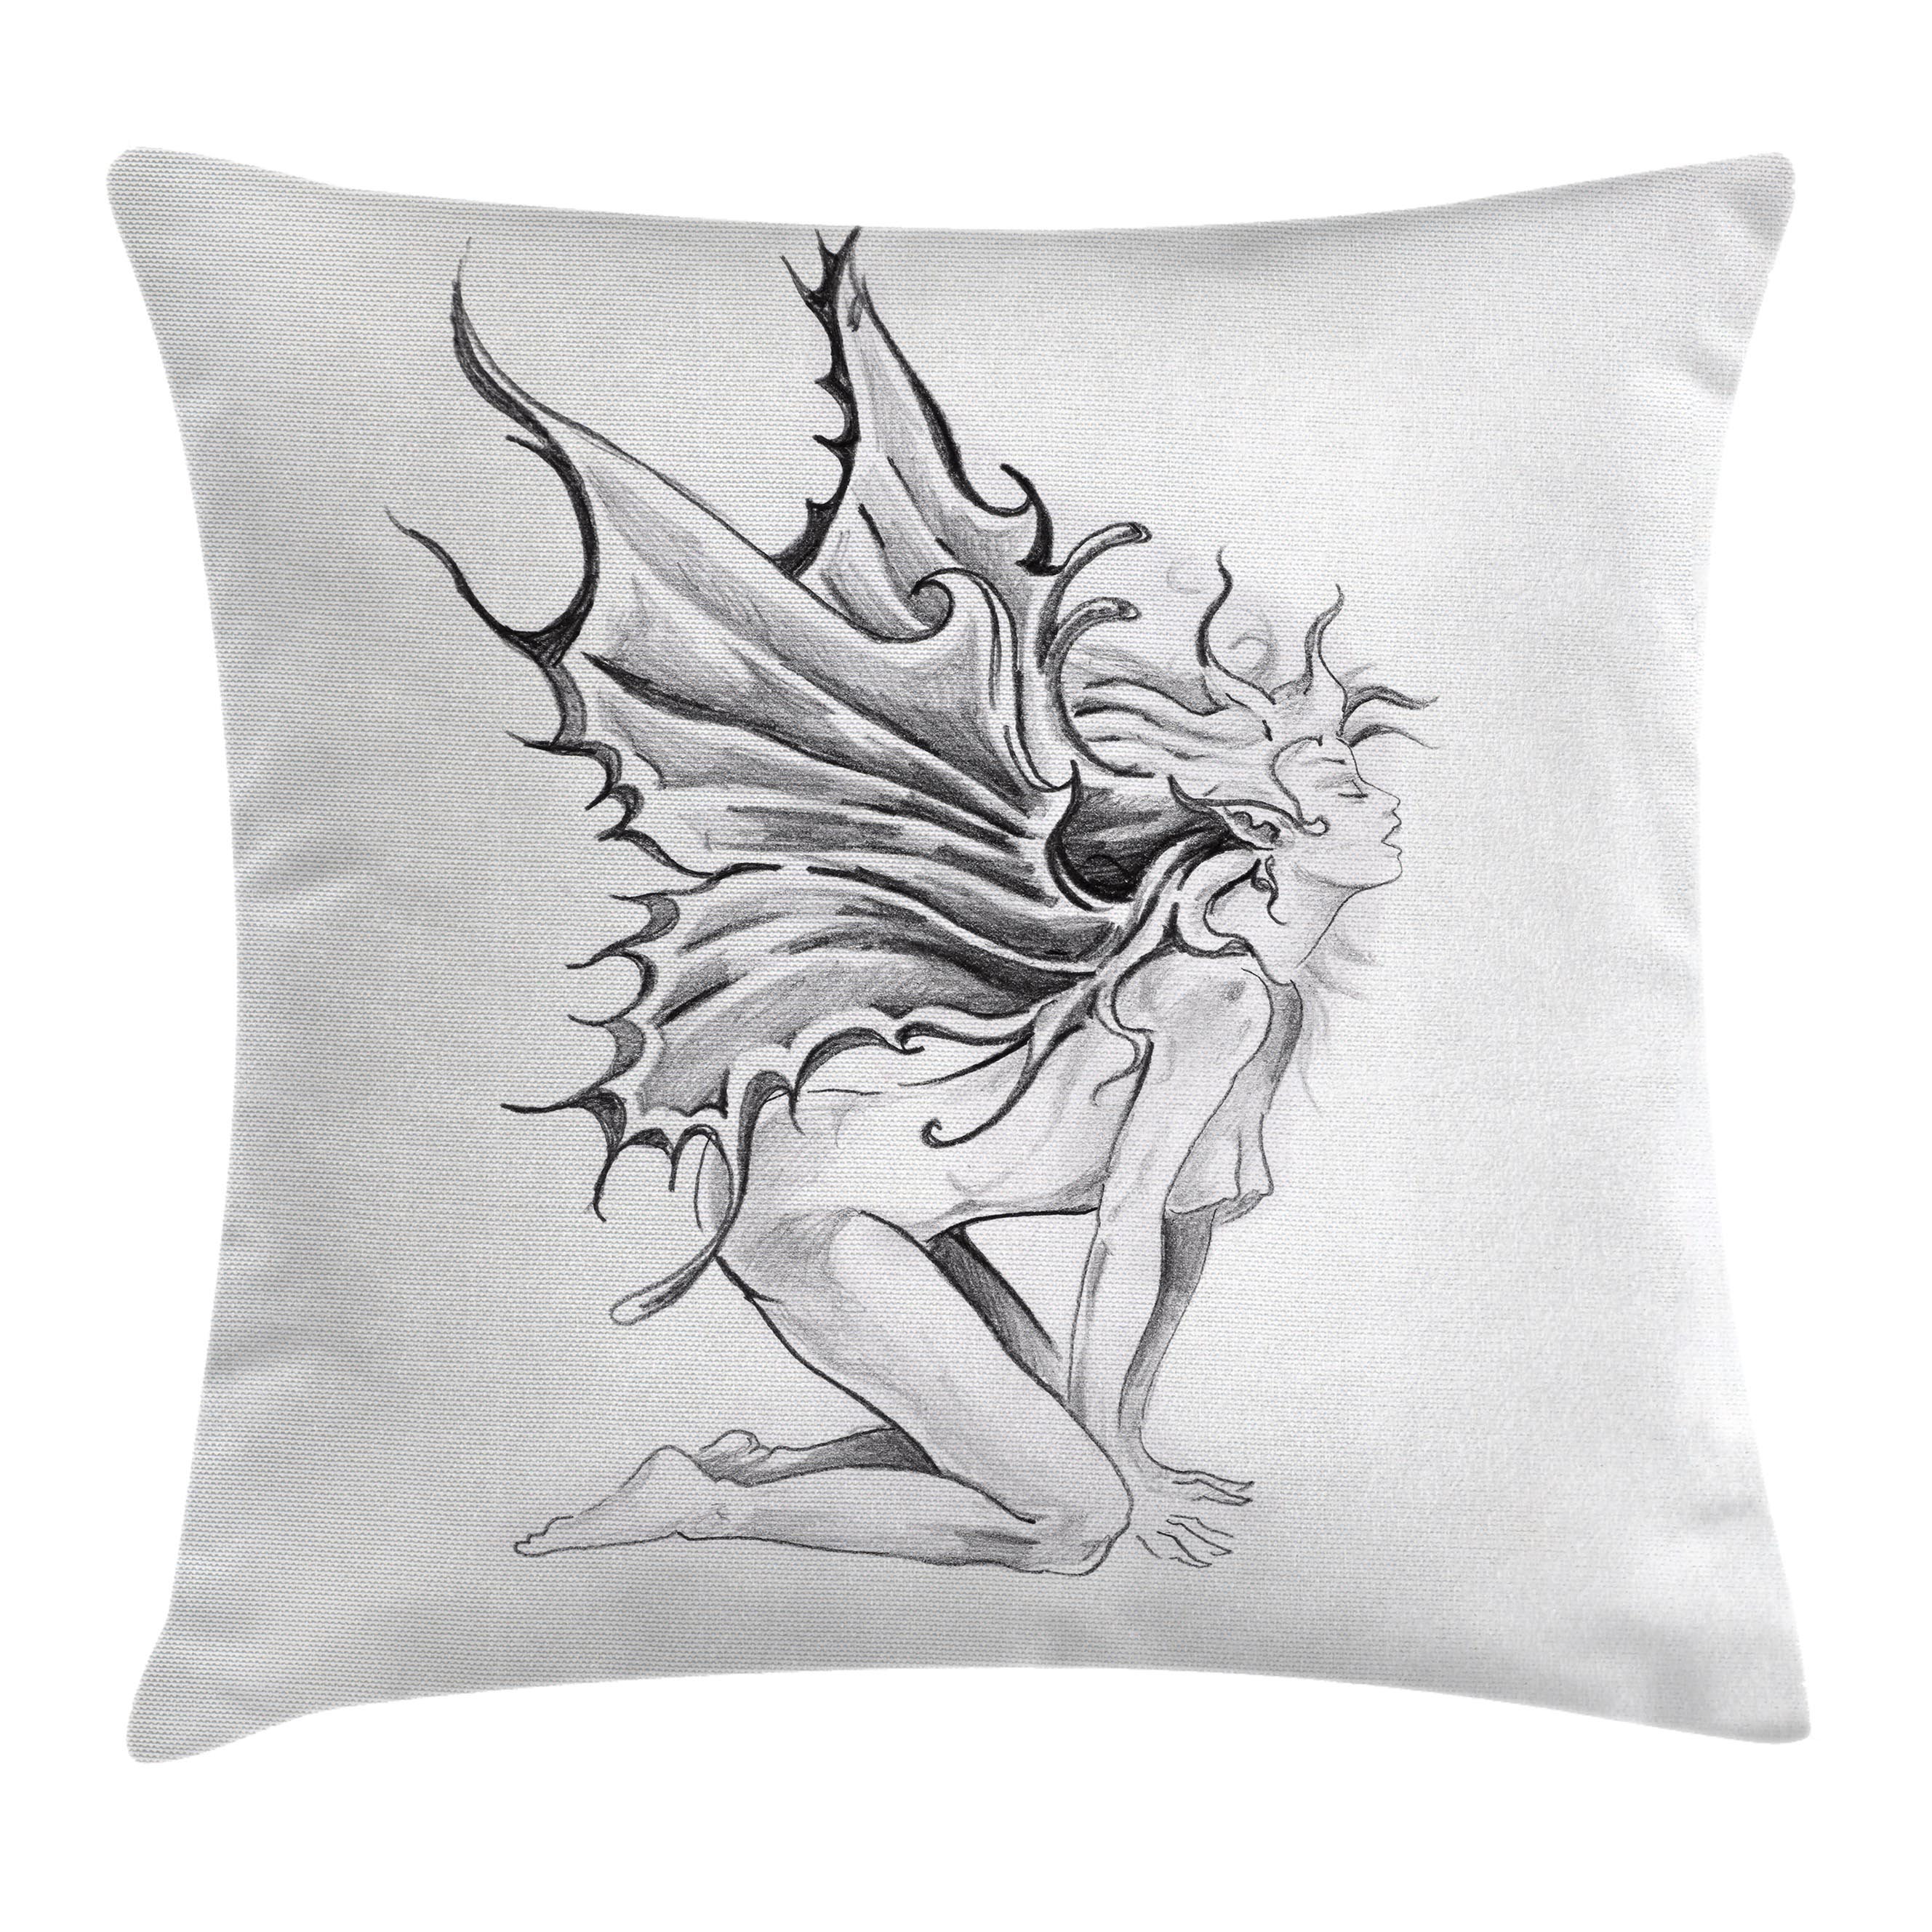 Tattoo decor throw pillow cushion cover artistic pencil drawing art print nude fairy opening its angel wings decorative square accent pillow case